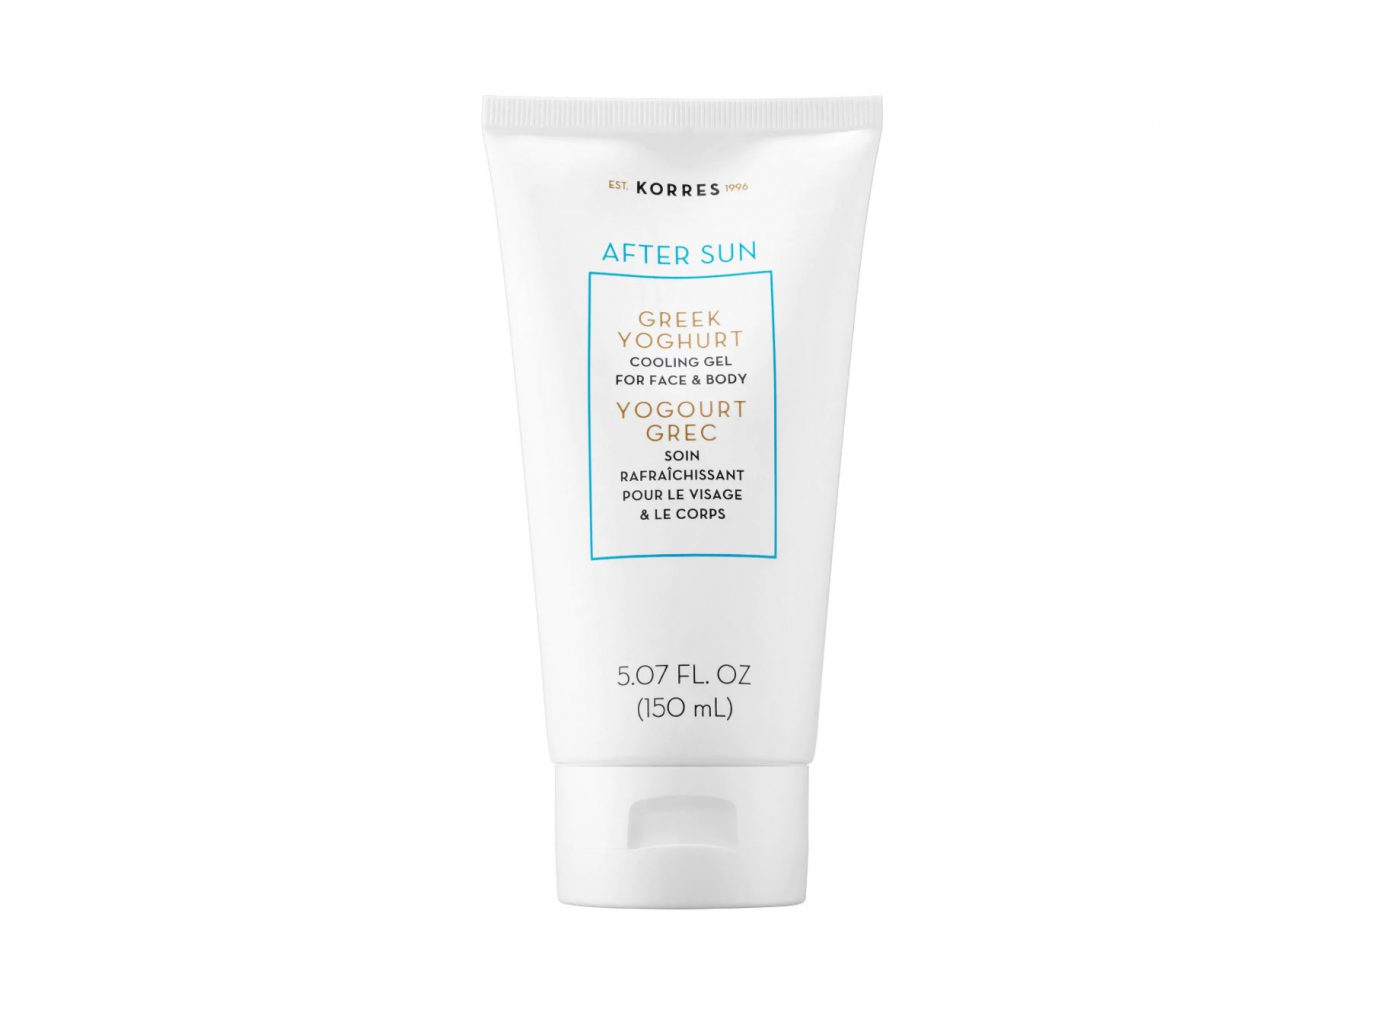 Korres After Sun Greek Yoghurt Cooling Gel for Face and Body